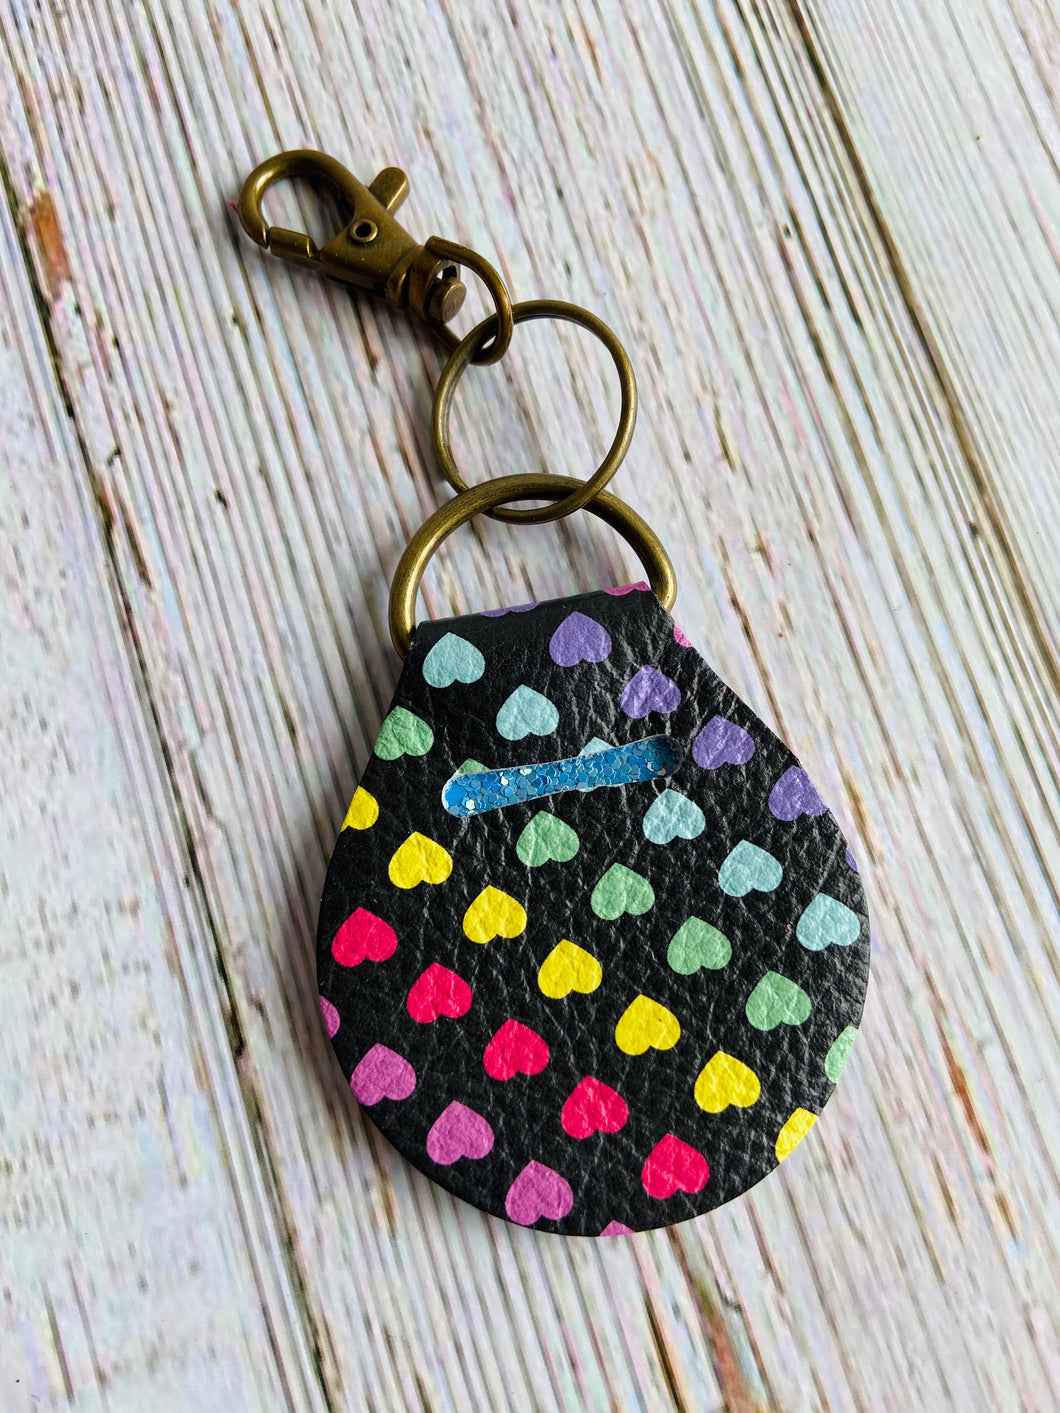 Rainbow Heart Genuine Leather Quarter Keeper Keychain - Black Cat Modern Boho Handmade Jewelry